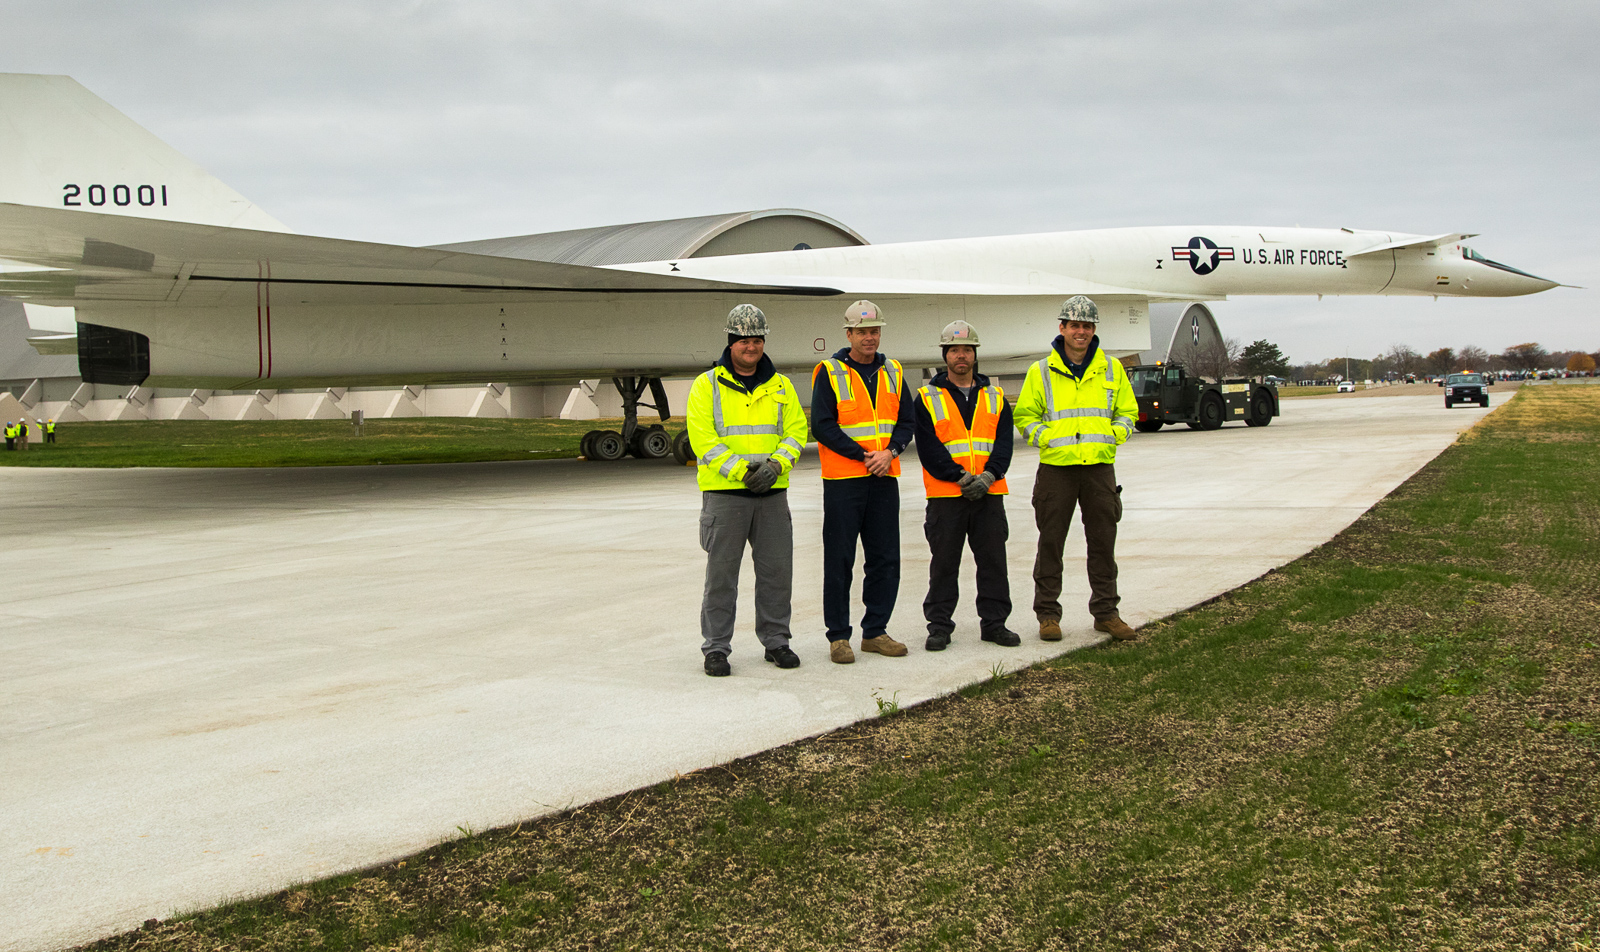 Some of the museum restoration staff pose in front of the freshly-cleaned XB-70 Valkyrie. (NMUSAF photo by Don Popp)